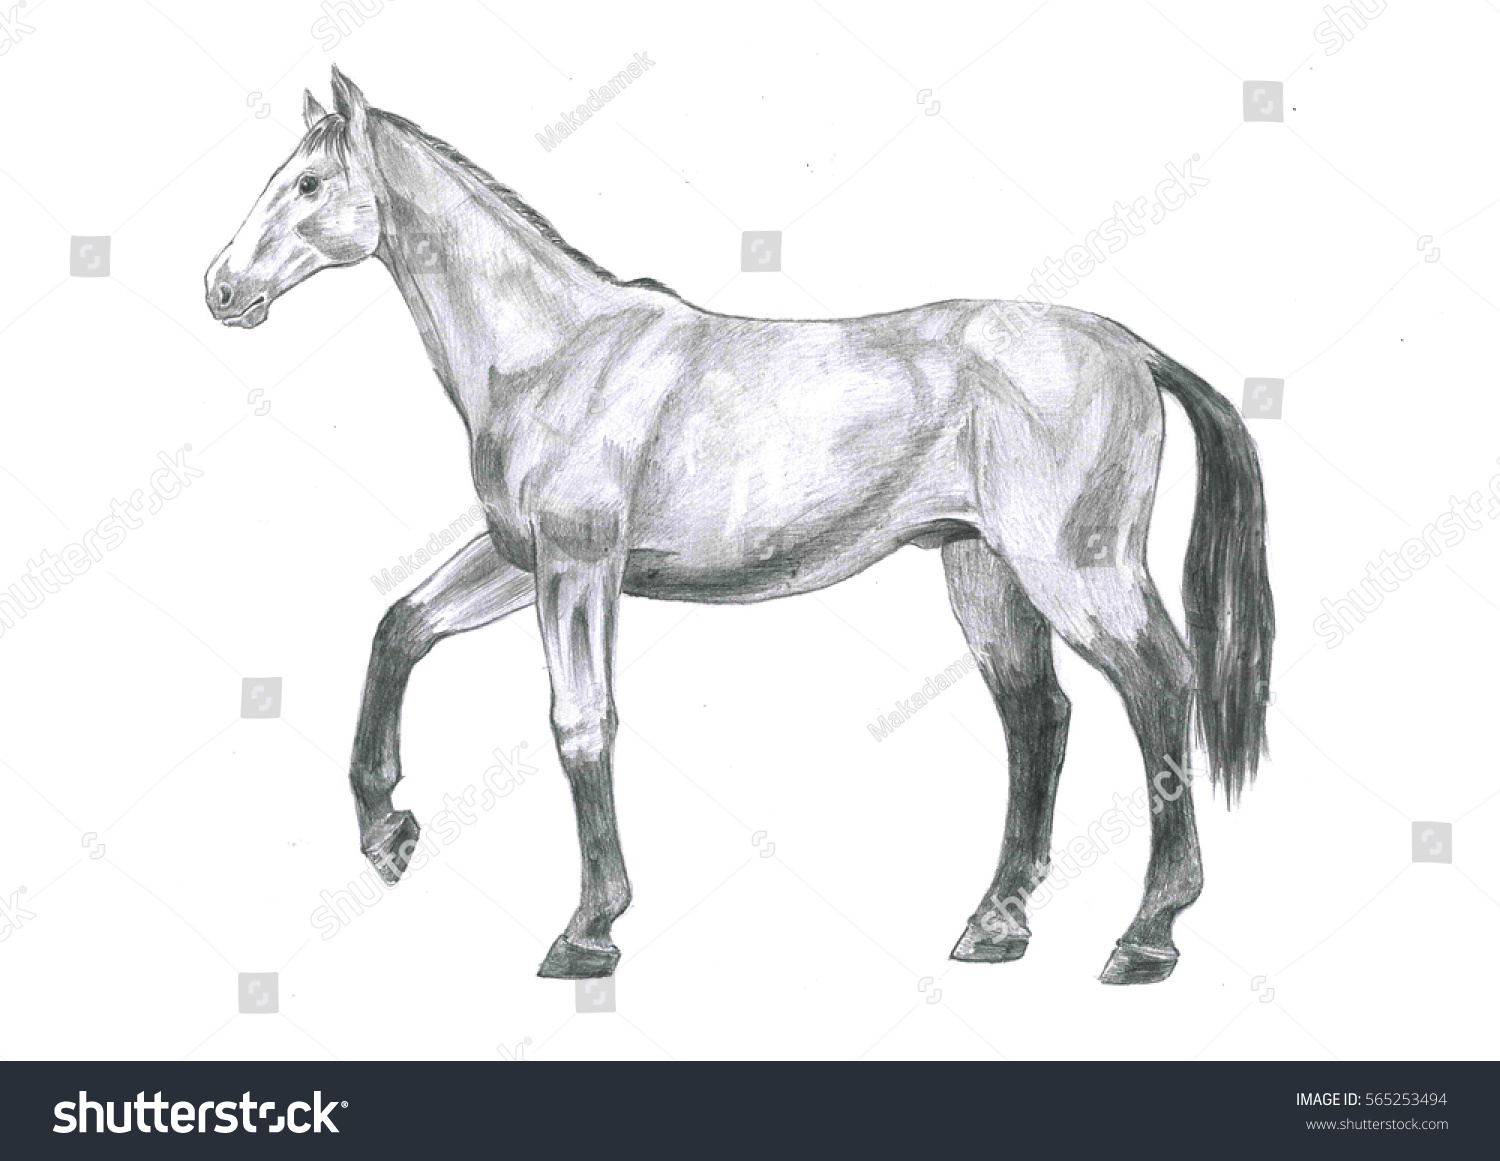 Thi Realistic Sketch Anatomy Horse Sketch Stock Illustration ...